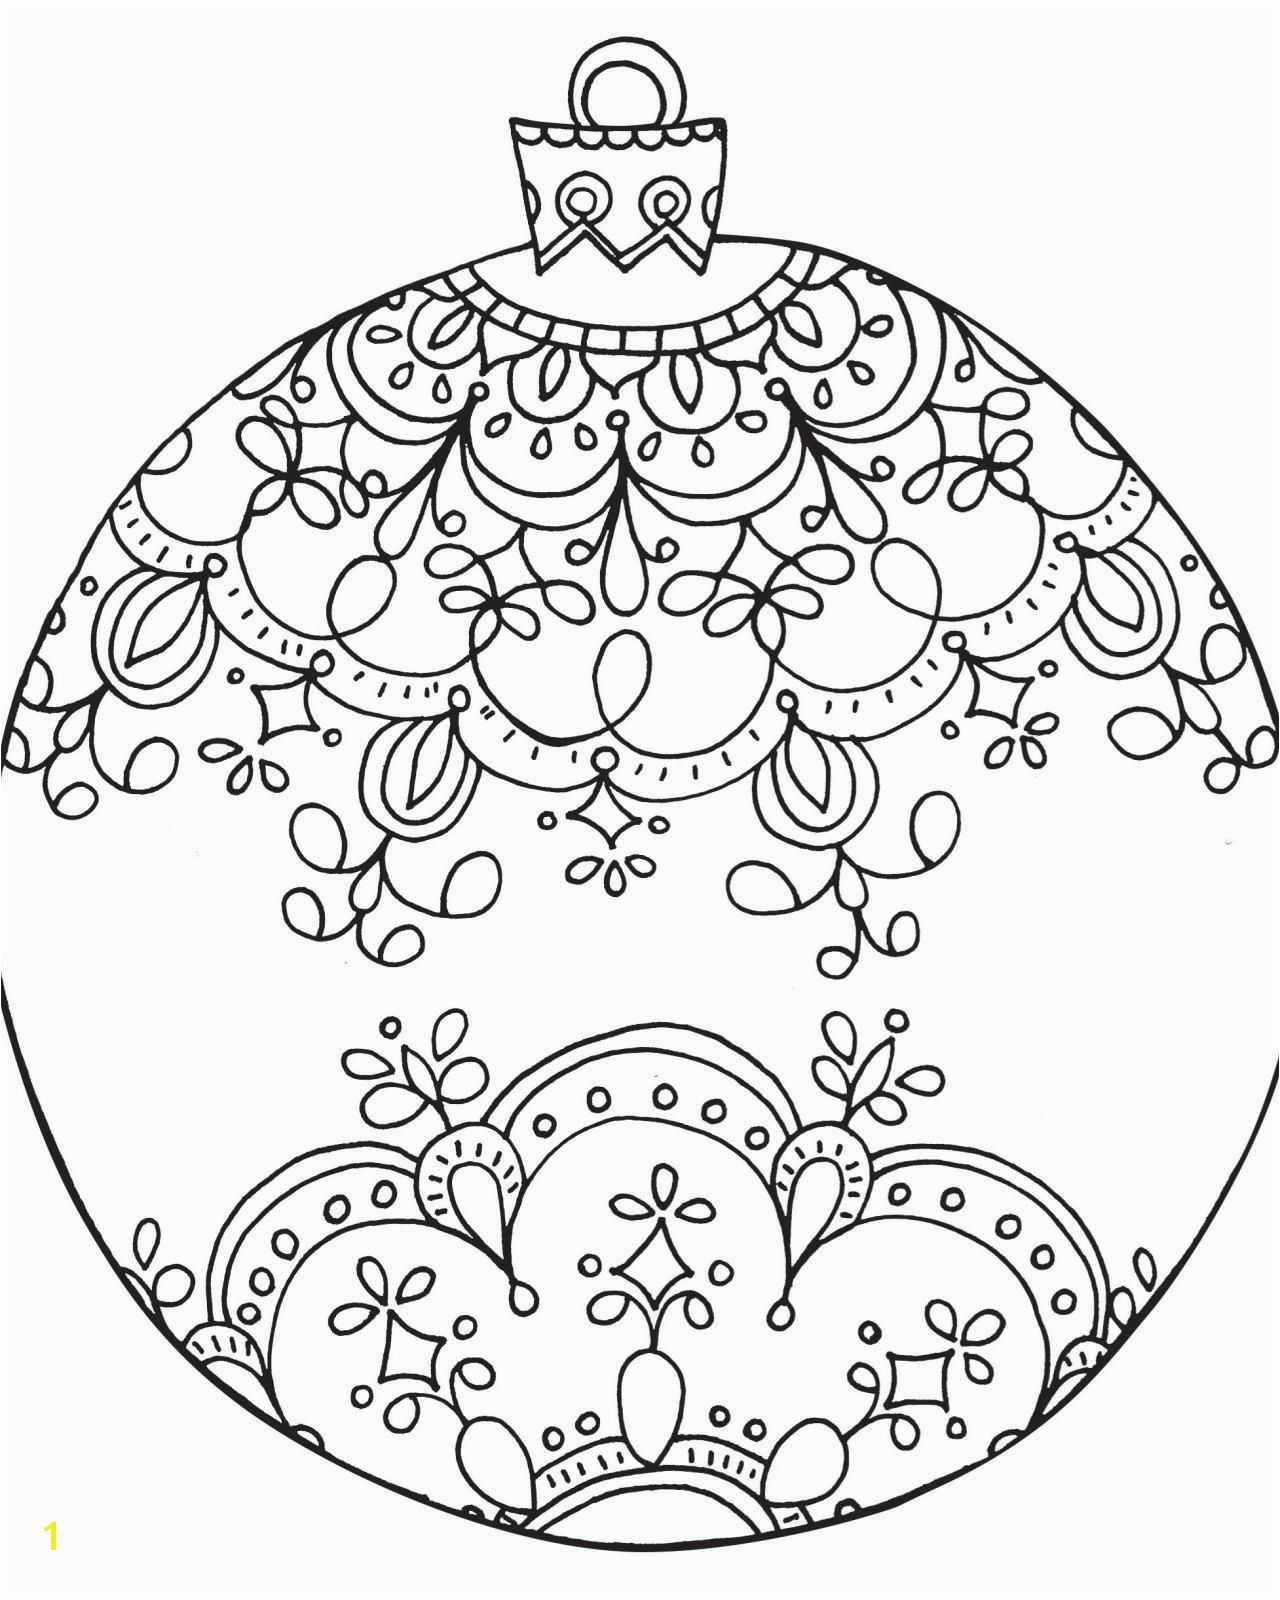 Christmas Star Printable Inspirational Baby Coloring Pages New Media Cache Ec0 Pinimg originals 2b 06 0d